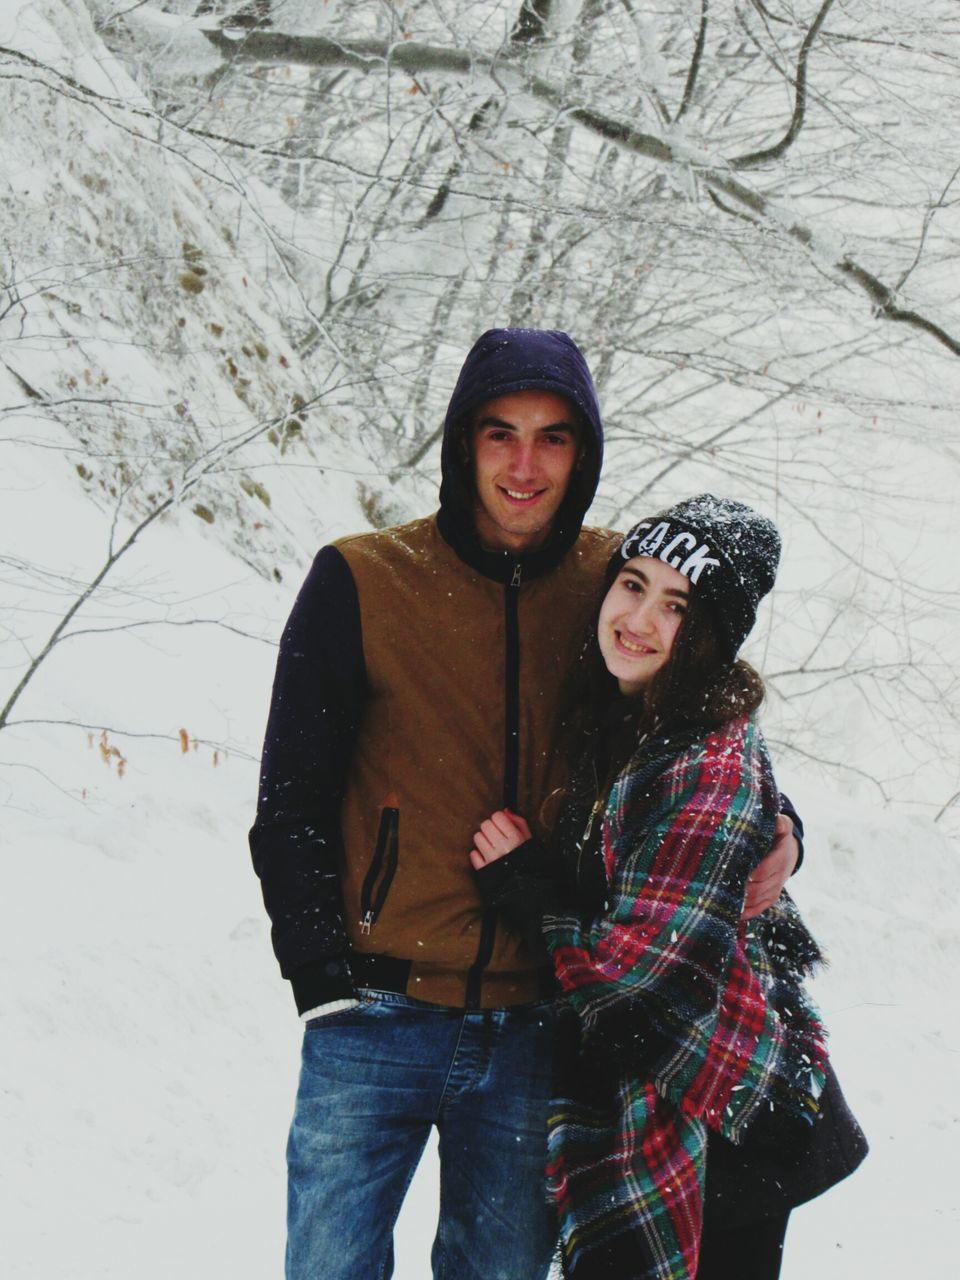 winter, cold temperature, snow, smiling, looking at camera, togetherness, happiness, leisure activity, real people, two people, portrait, lifestyles, young women, standing, warm clothing, love, knit hat, outdoors, day, bonding, young adult, friendship, cheerful, nature